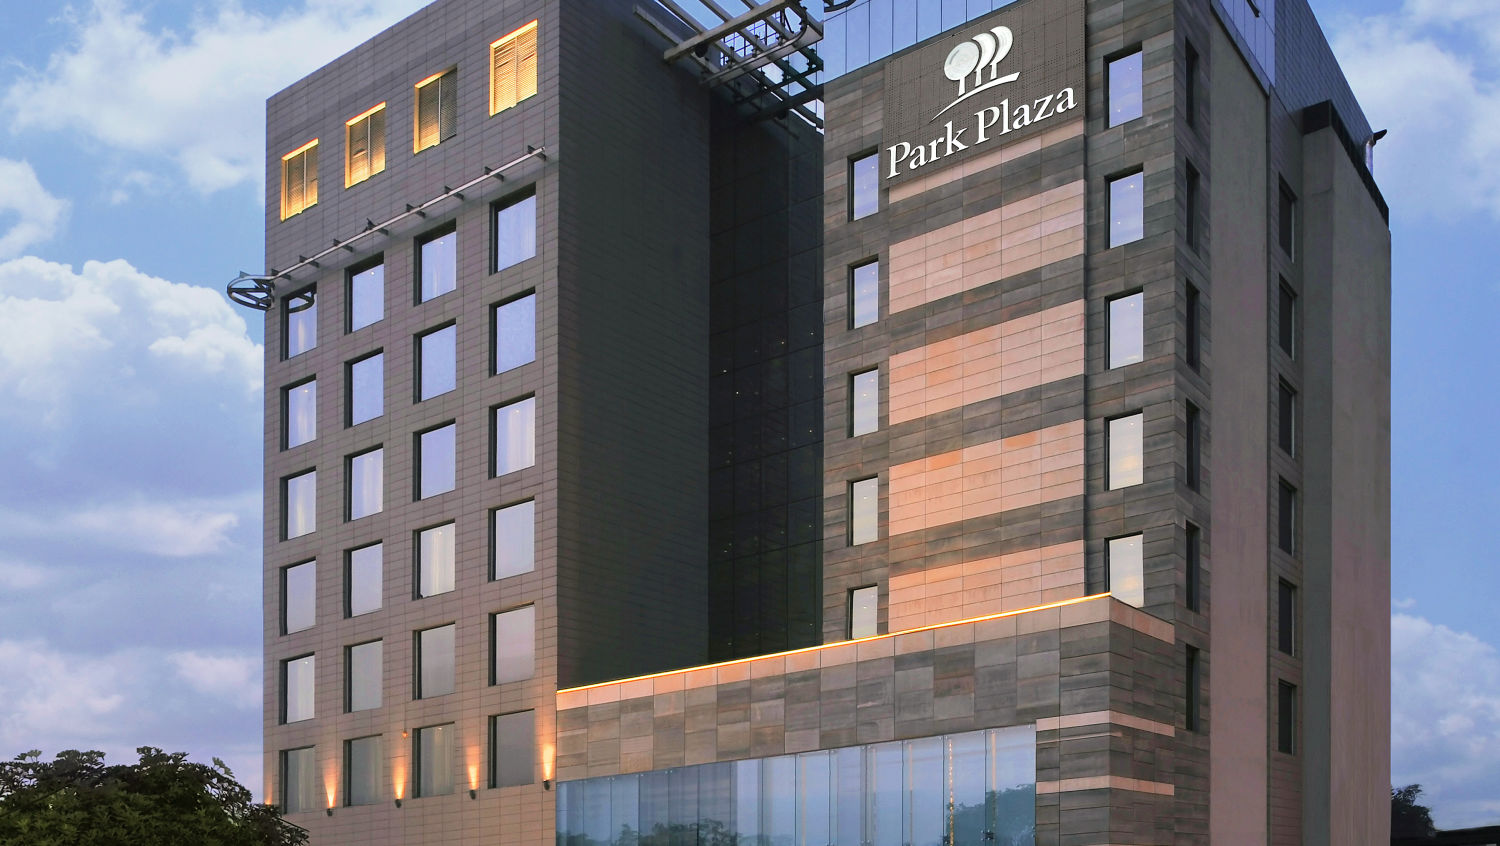 Facade view of Hotel Park Plaza, Faridabad - A Carlson Brand Managed by Sarovar Hotels, Hotels in Faridabad